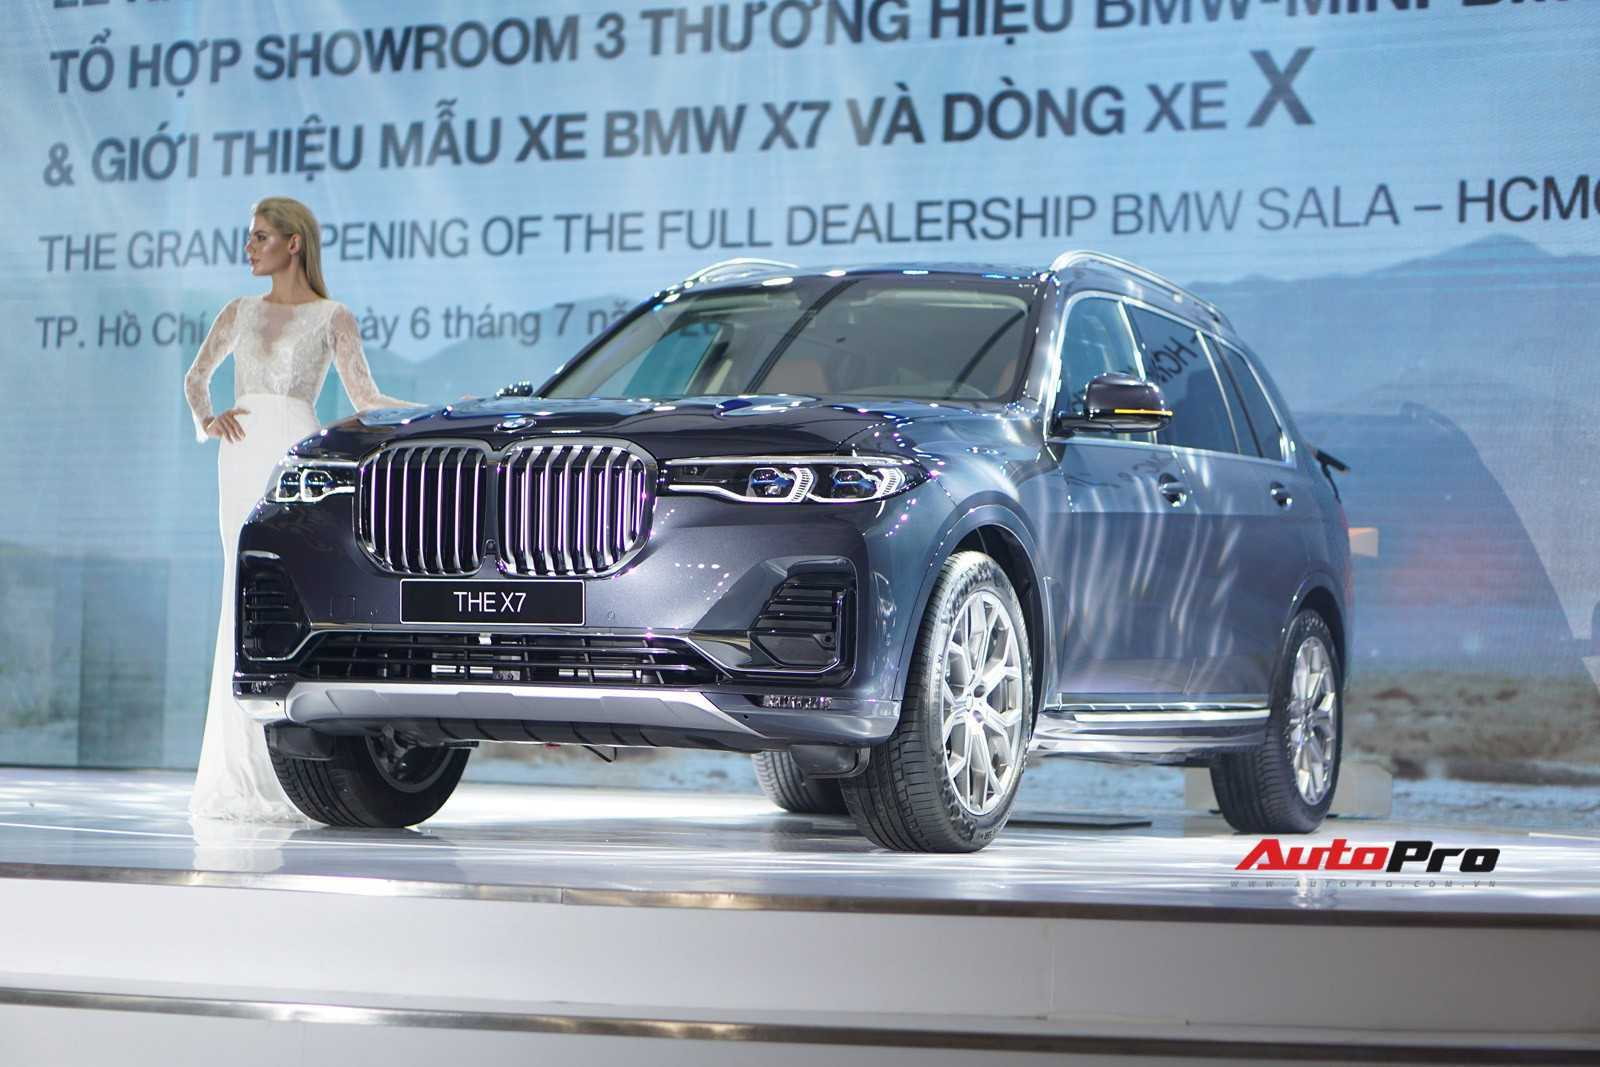 https://giaxe-bmw.vn/wp-content/uploads/2019/07/bmw-x7-1562418772685306750633.jpg